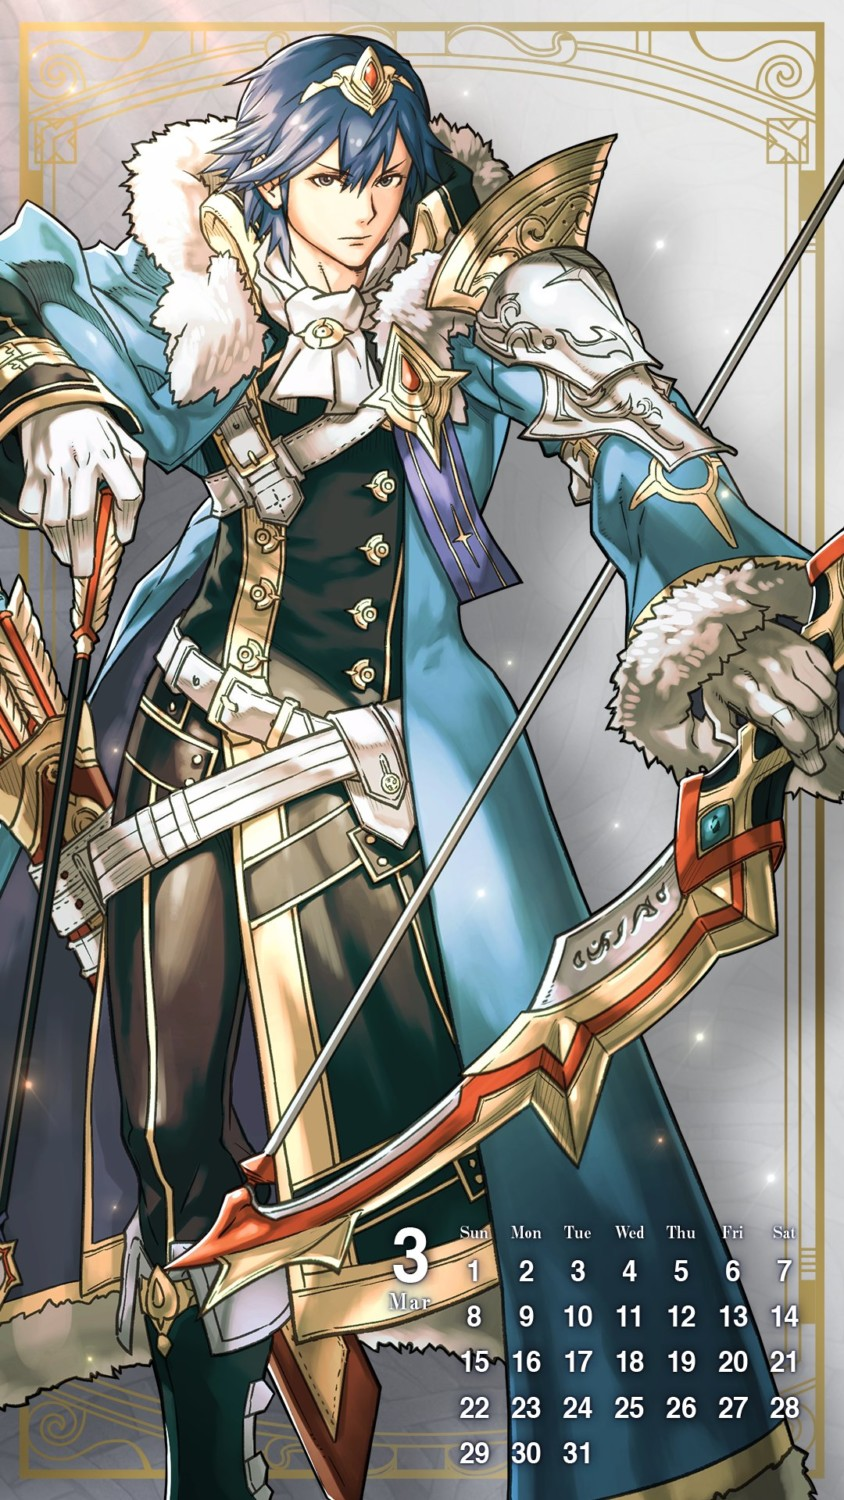 Fire Emblem Heroes March 2020 Mobile Wallpaper Available